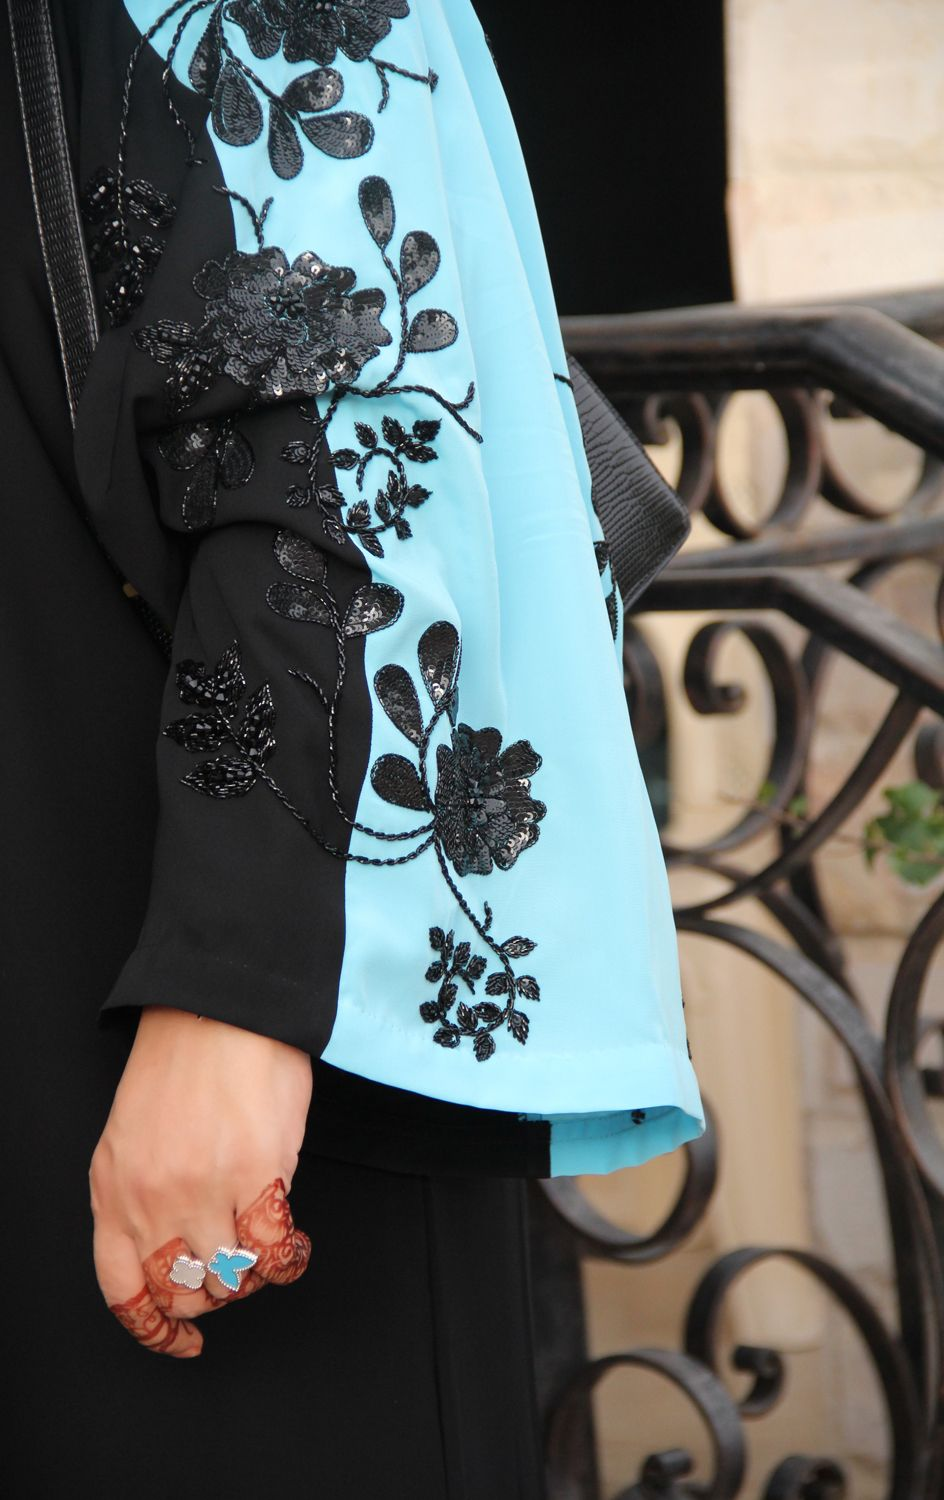 Directional Yet Demure Clothing For The Cool Modern Woman: Pin By Nurzahidah On Abaya